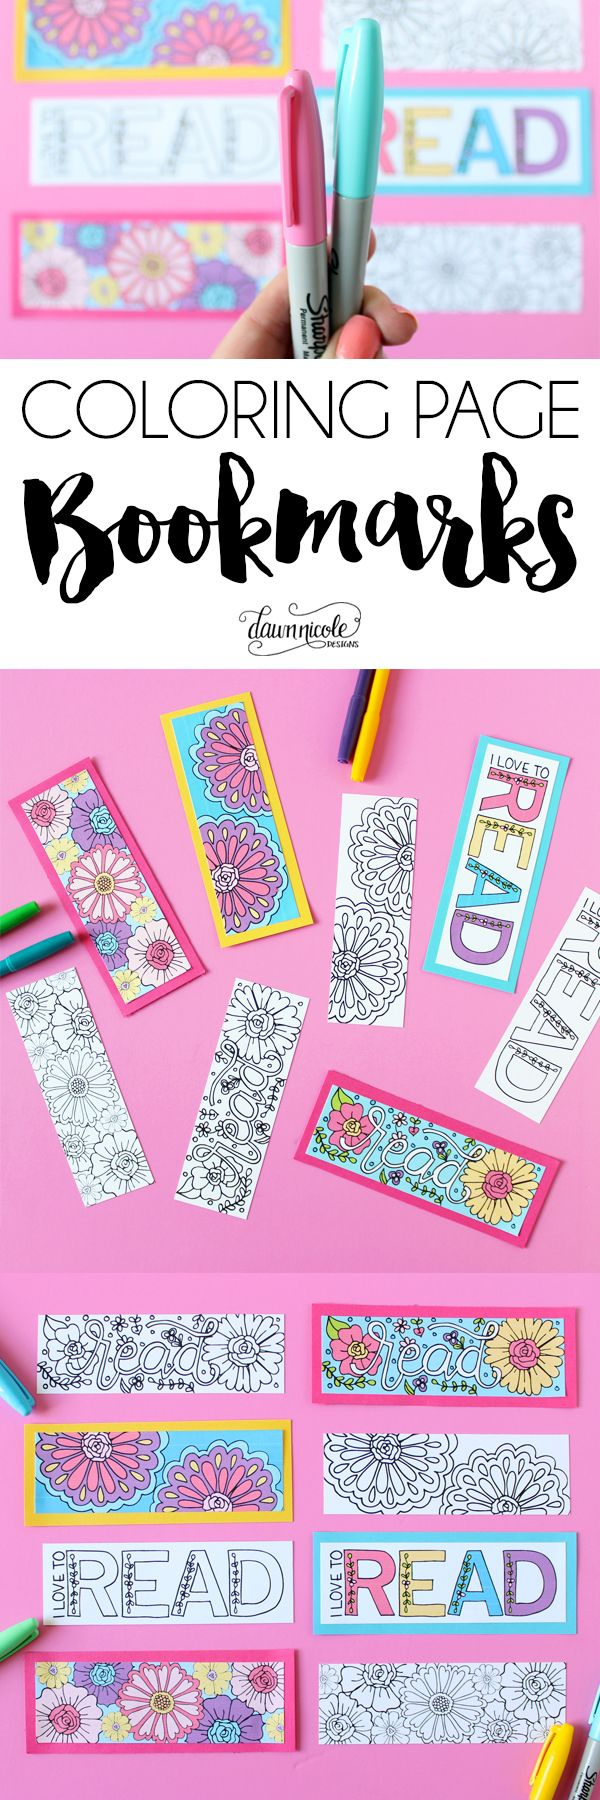 Bookmarks to color of dr king - Free Summer Coloring Page Bookmarks Color Your Own Or Grab The Already Colored